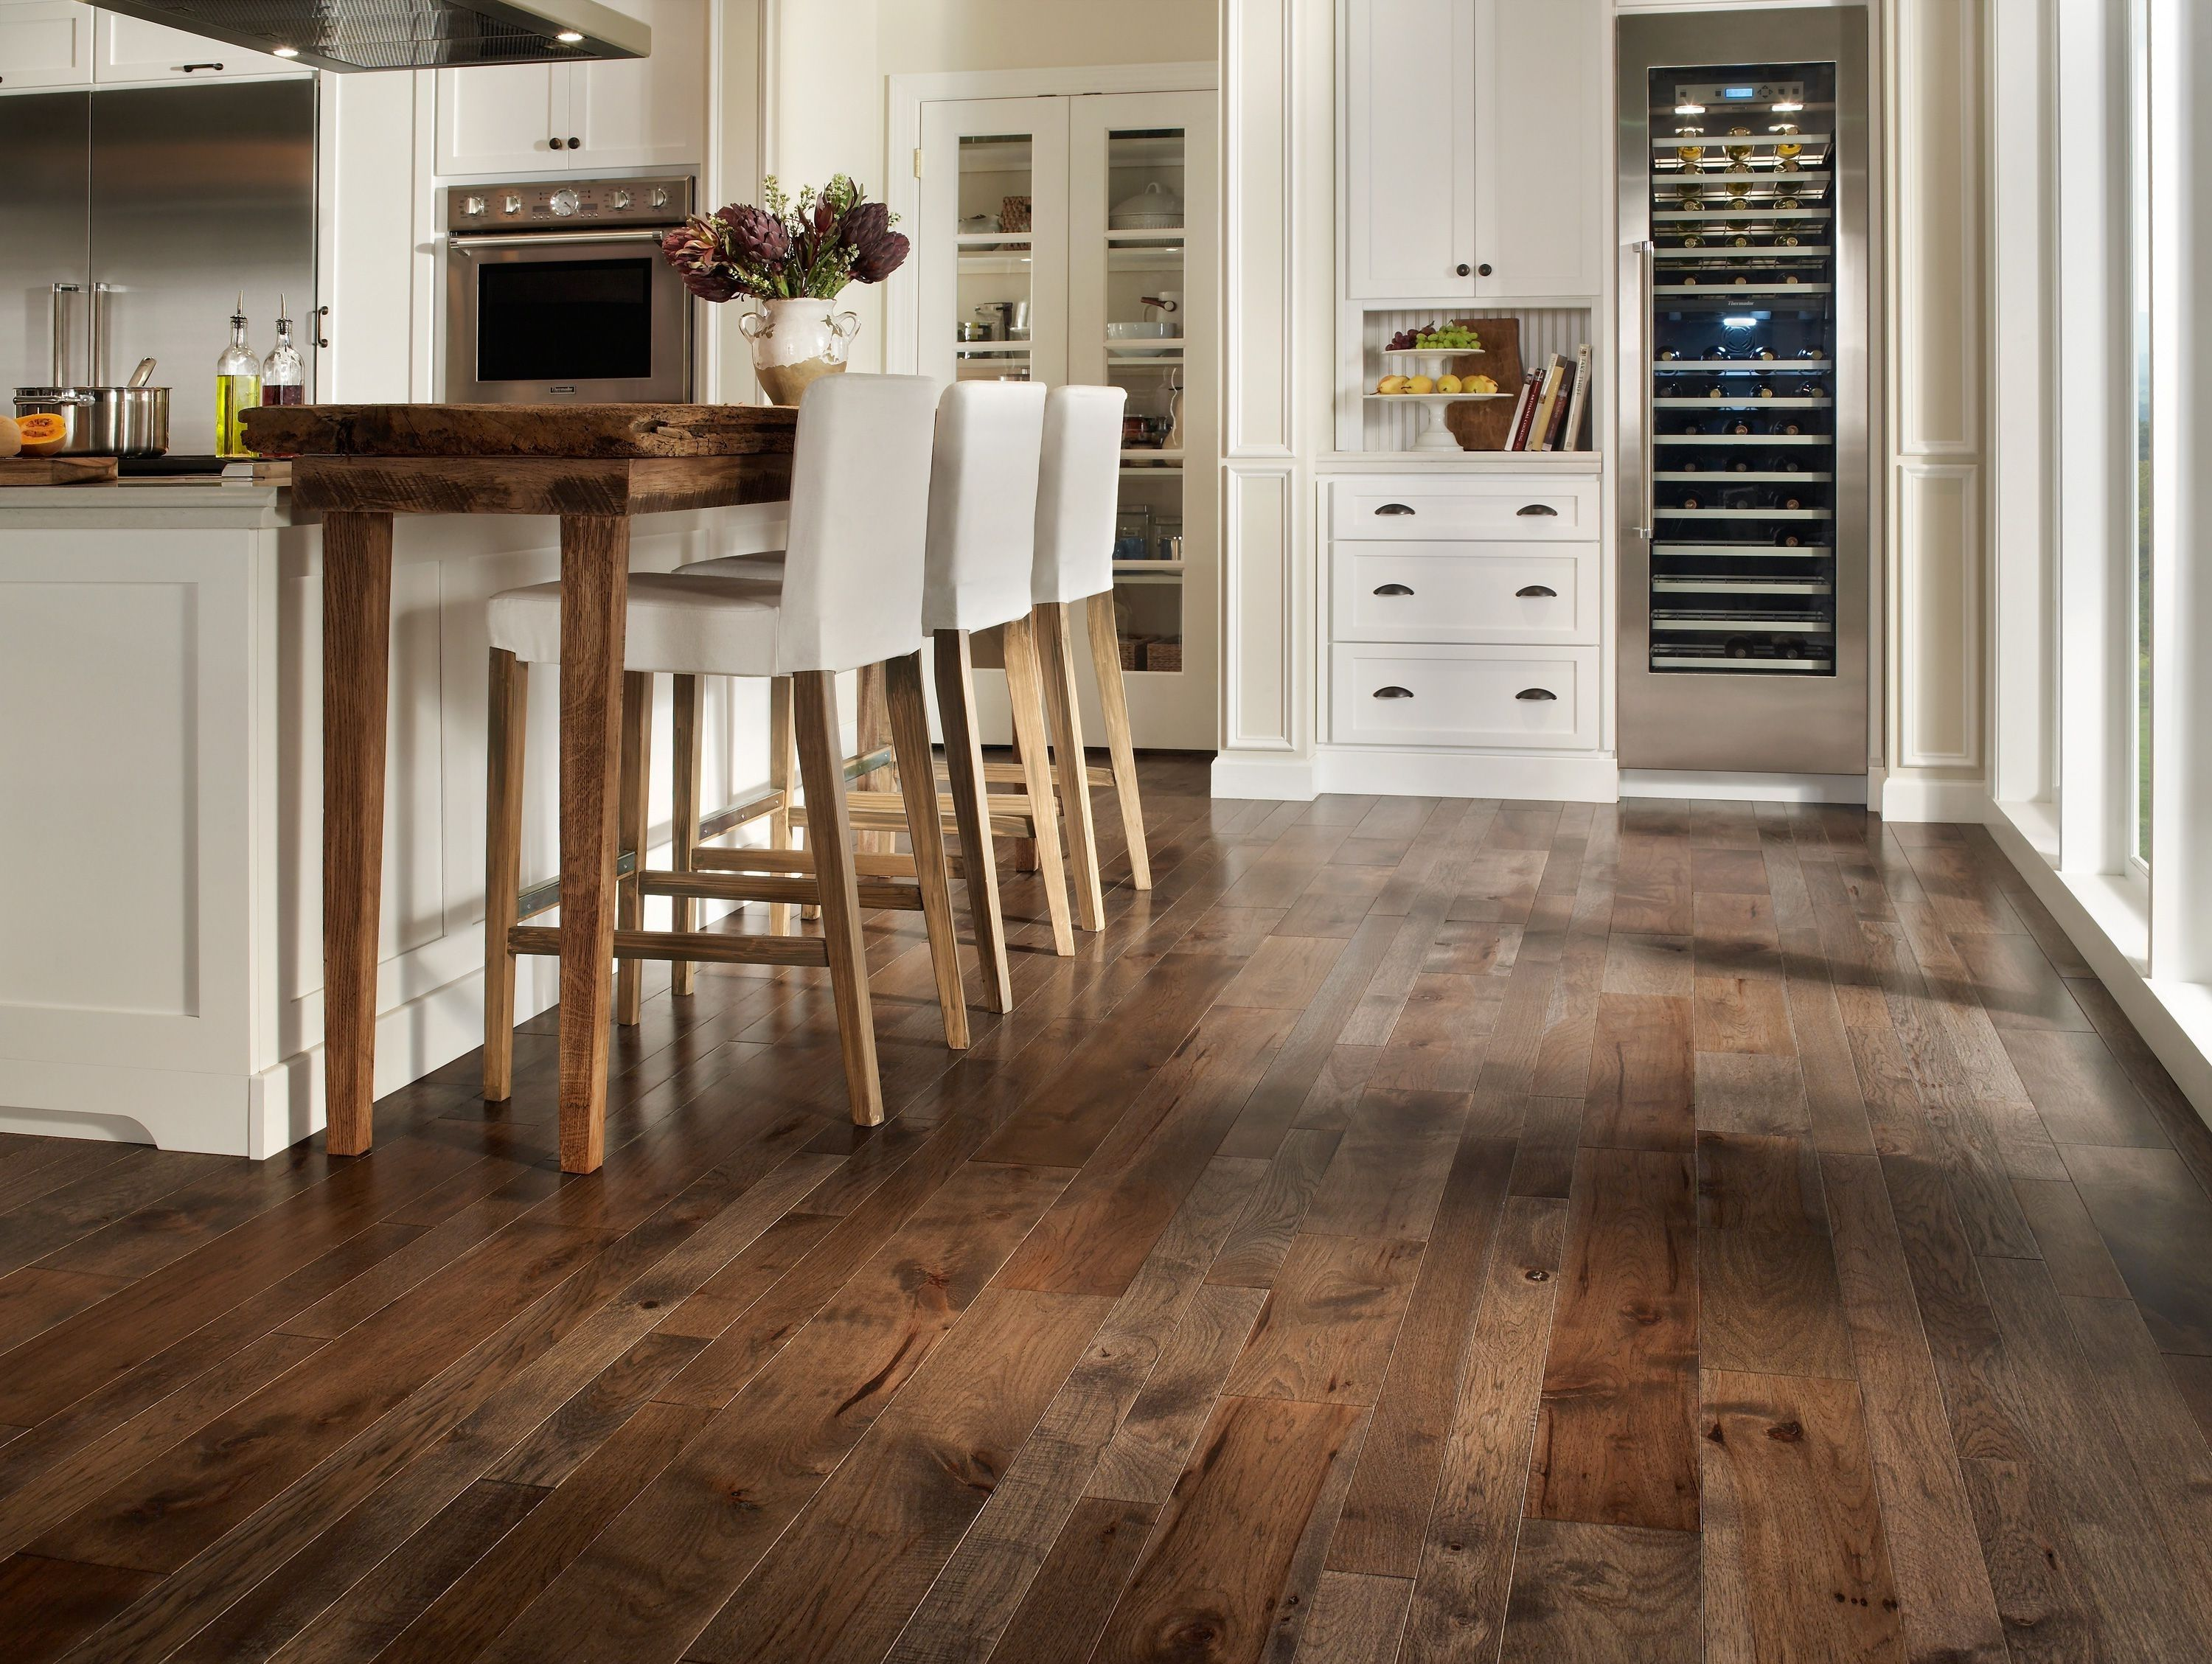 Choose Laminate Wood Floor Color Flooring Could Be A